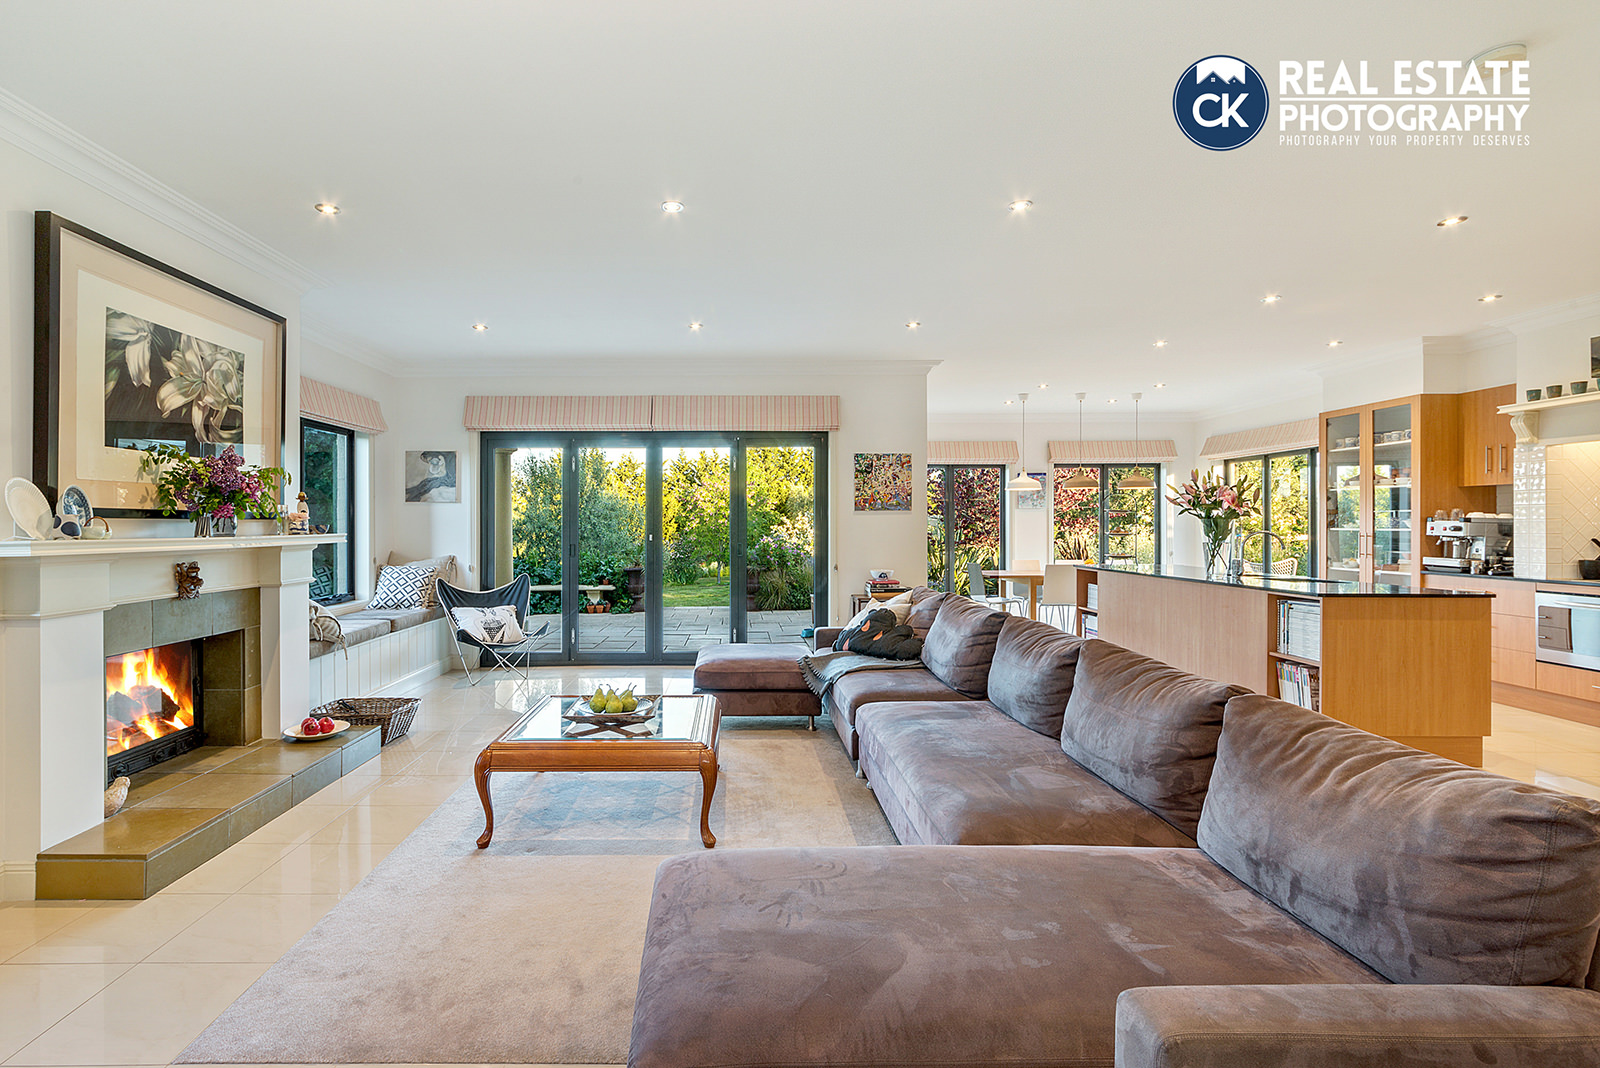 Professional Real Estate Photographers Geelong